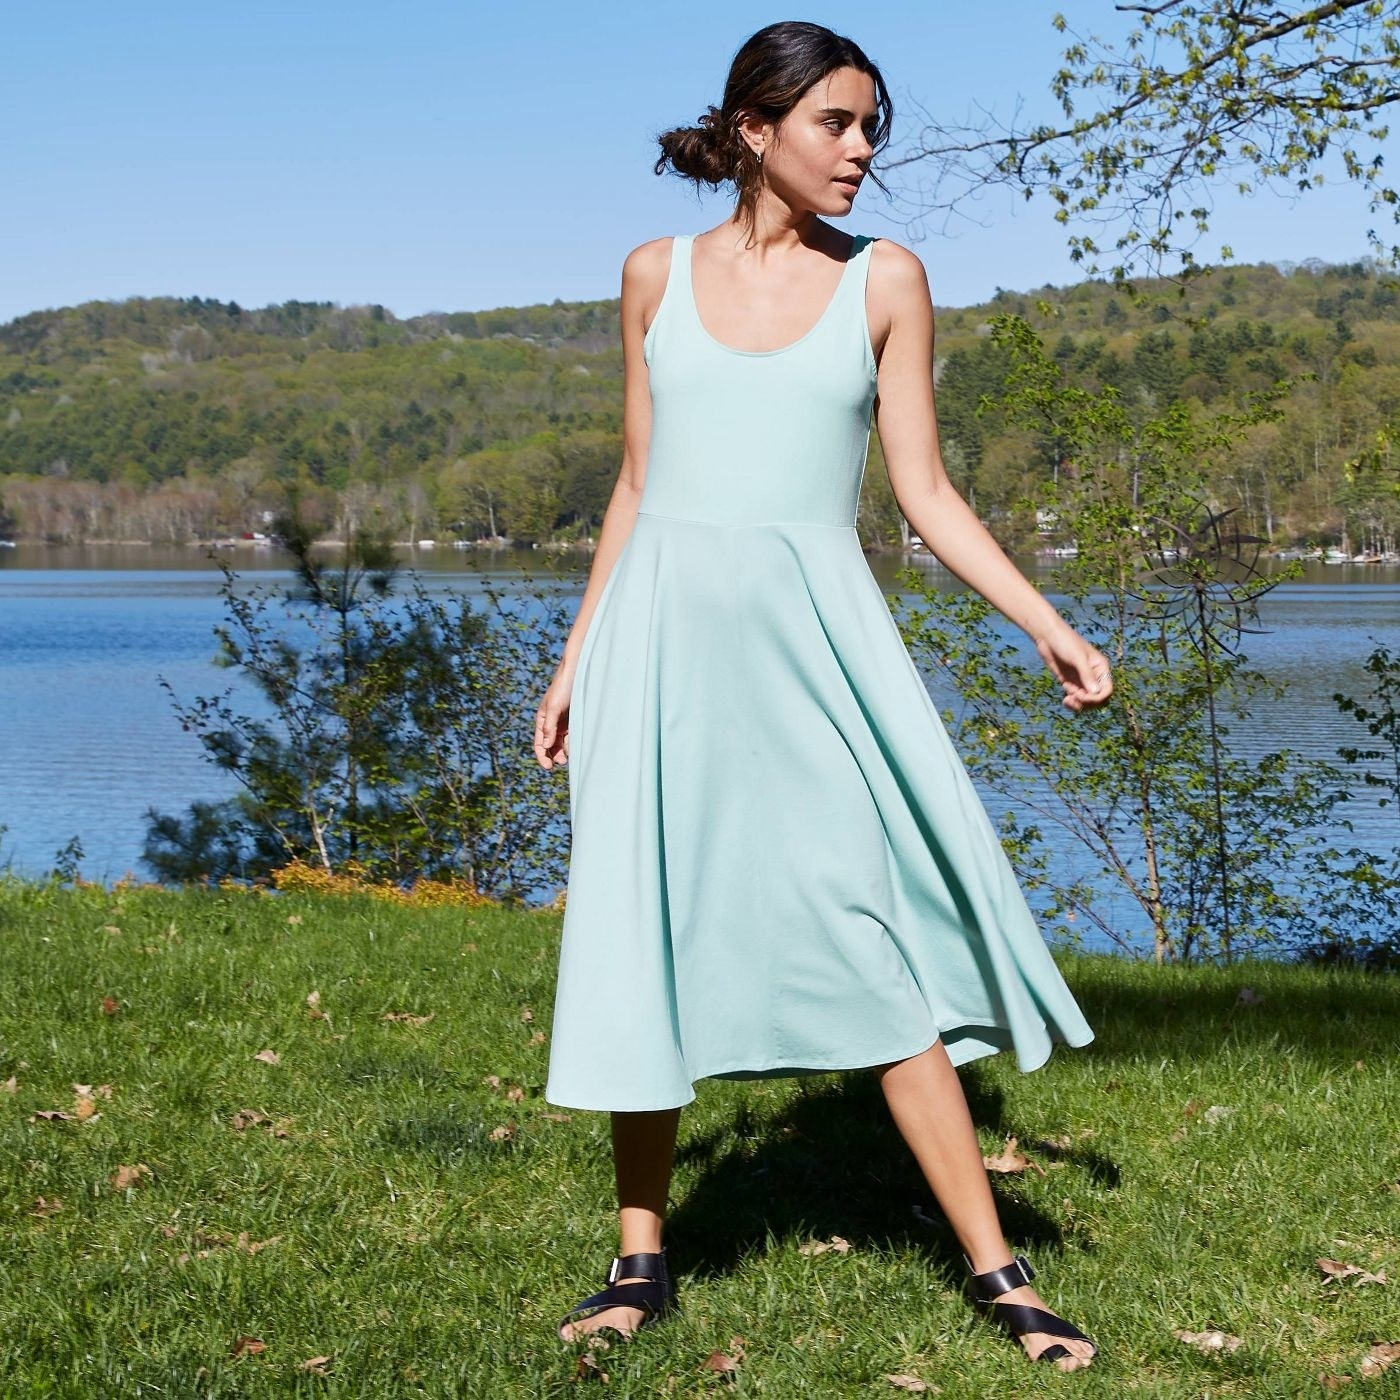 A model in a scoop neck pale blue dress that falls below the knee